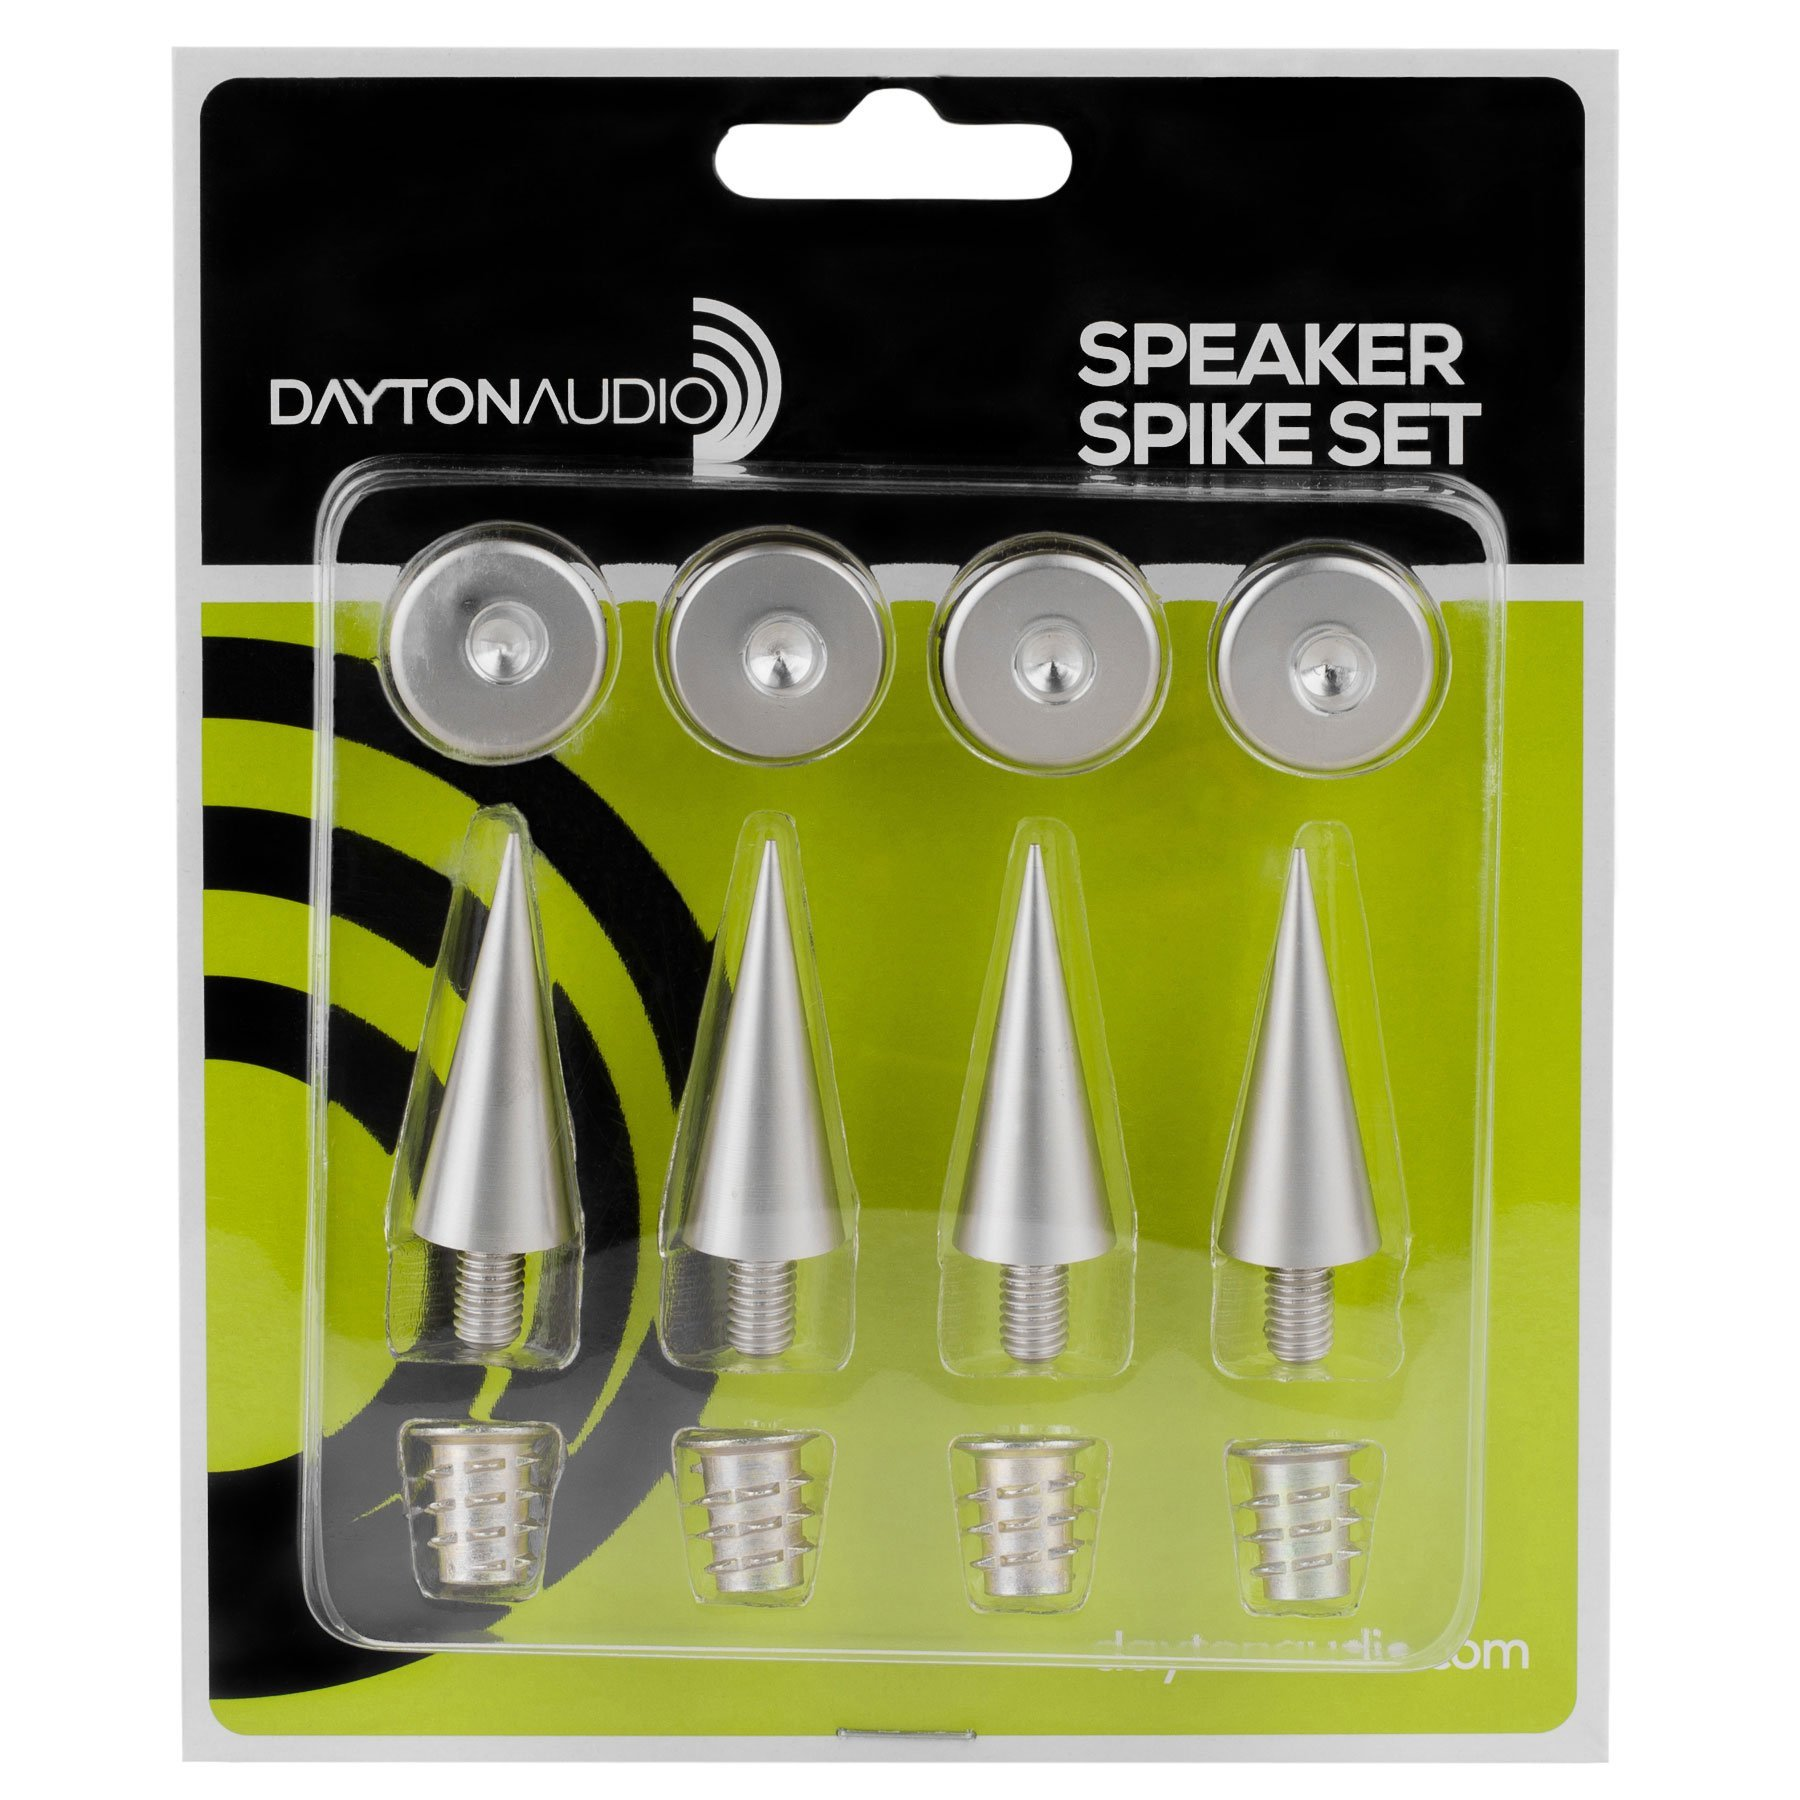 Dayton Audio DSS3-SN Satin Nickel Speaker Spike Set 4 Pcs. by Dayton Audio